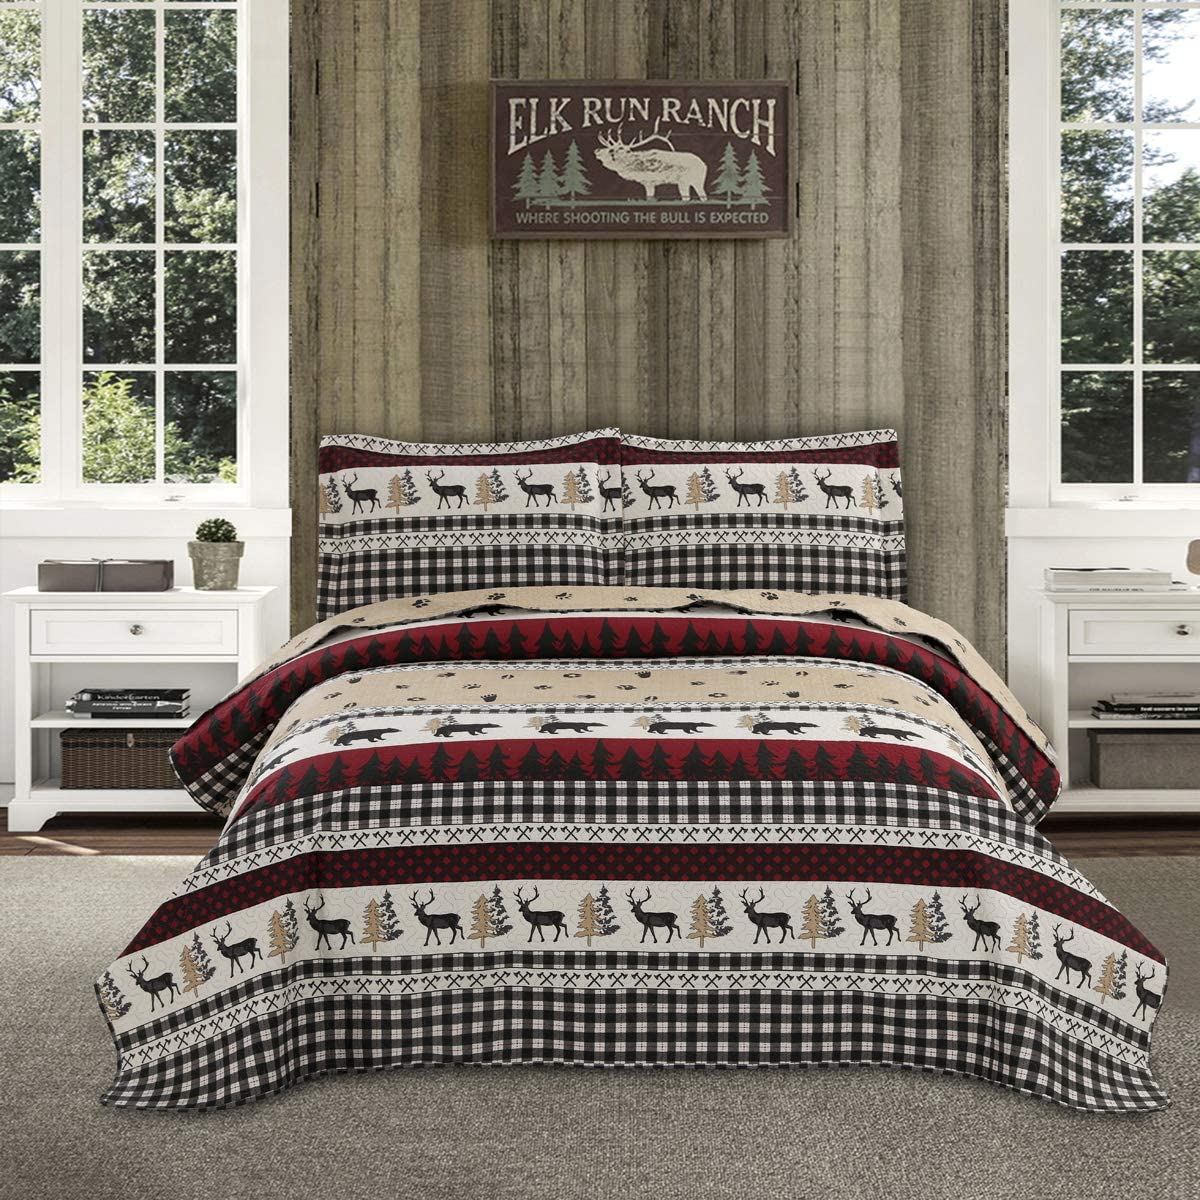 Lodge Quilt Set King Size,Bedding Lightweight Cabin Quilts Set,3Pcs Rustic Moose Bear Bedspreads Reversible Lodge Coverlet Sets Deer Tree Printed Quilt Pillow Shams